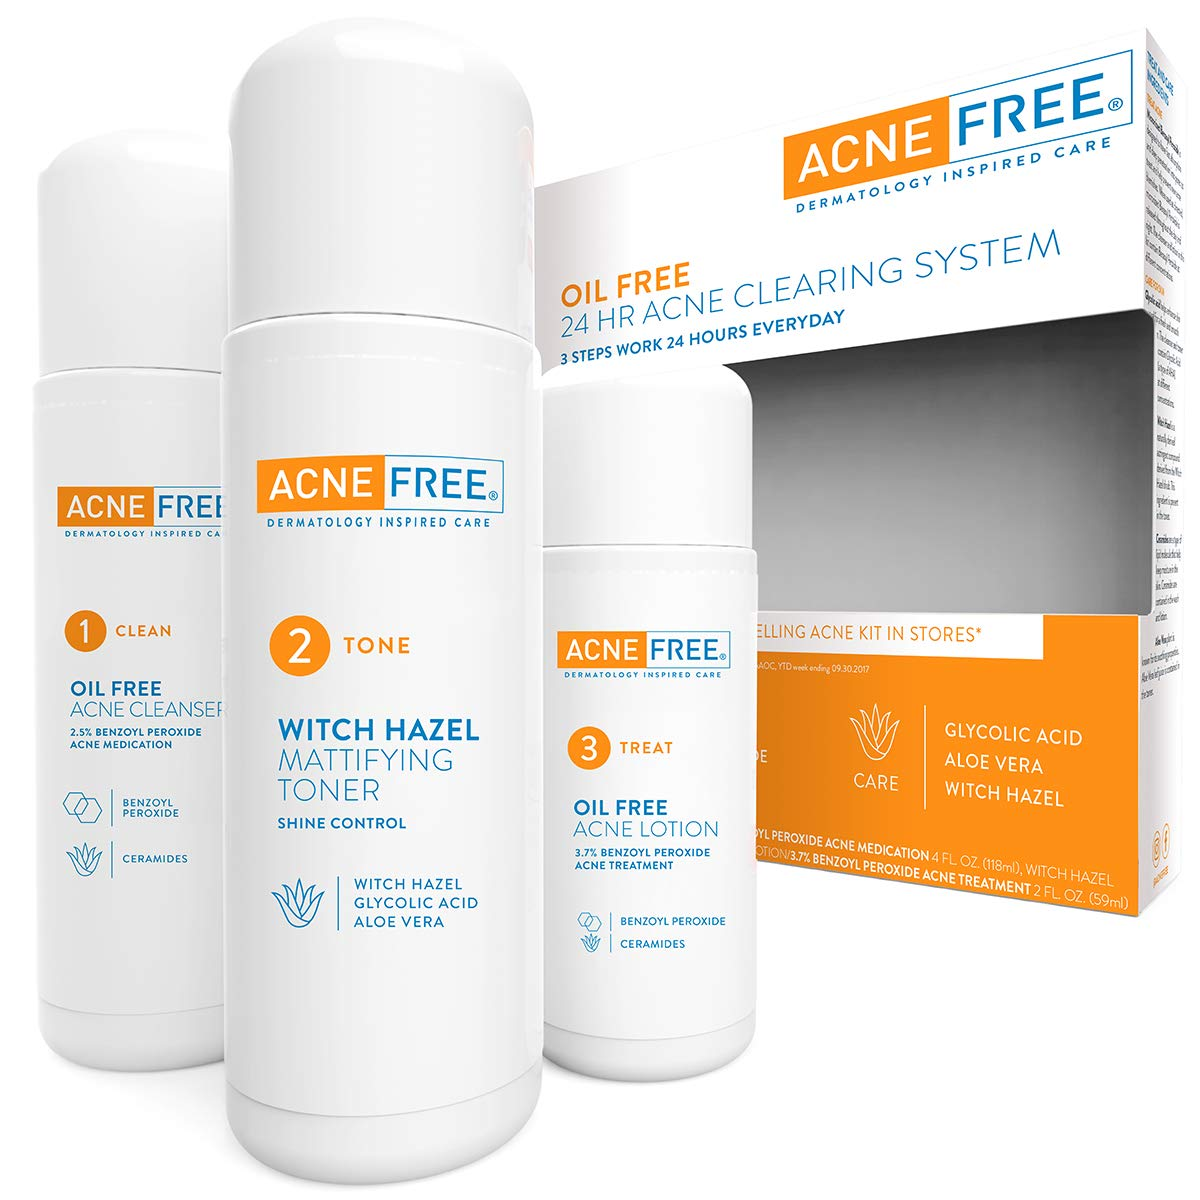 AcneFree 3 Step 24 Hour Acne Treatment Kit - Clearing System w Oil Free Acne Cleanser, Witch Hazel Toner, & Oil Free Acne Lotion - Acne Solution w/ Benzoyl Peroxide for Teens and Adults - Original by AcneFree